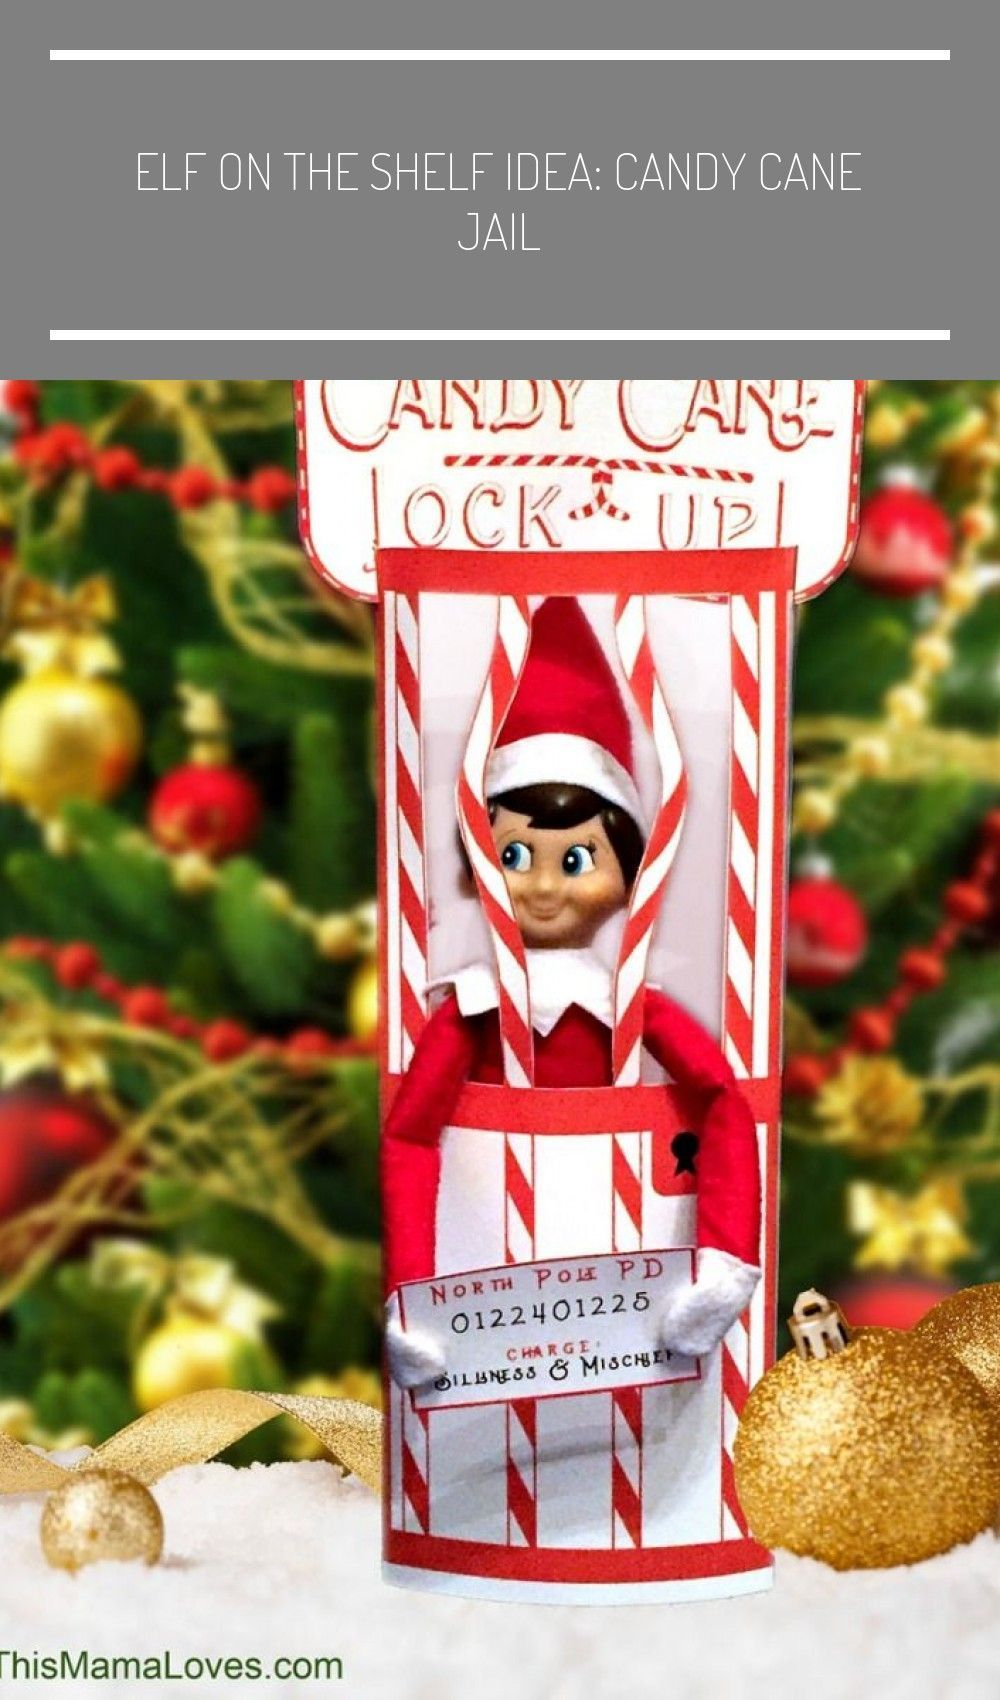 Terrific Cost Free Elf On The Shelf Idea Candy C Concepts In 2020 Elf On The Shelf Elf Christmas Activities